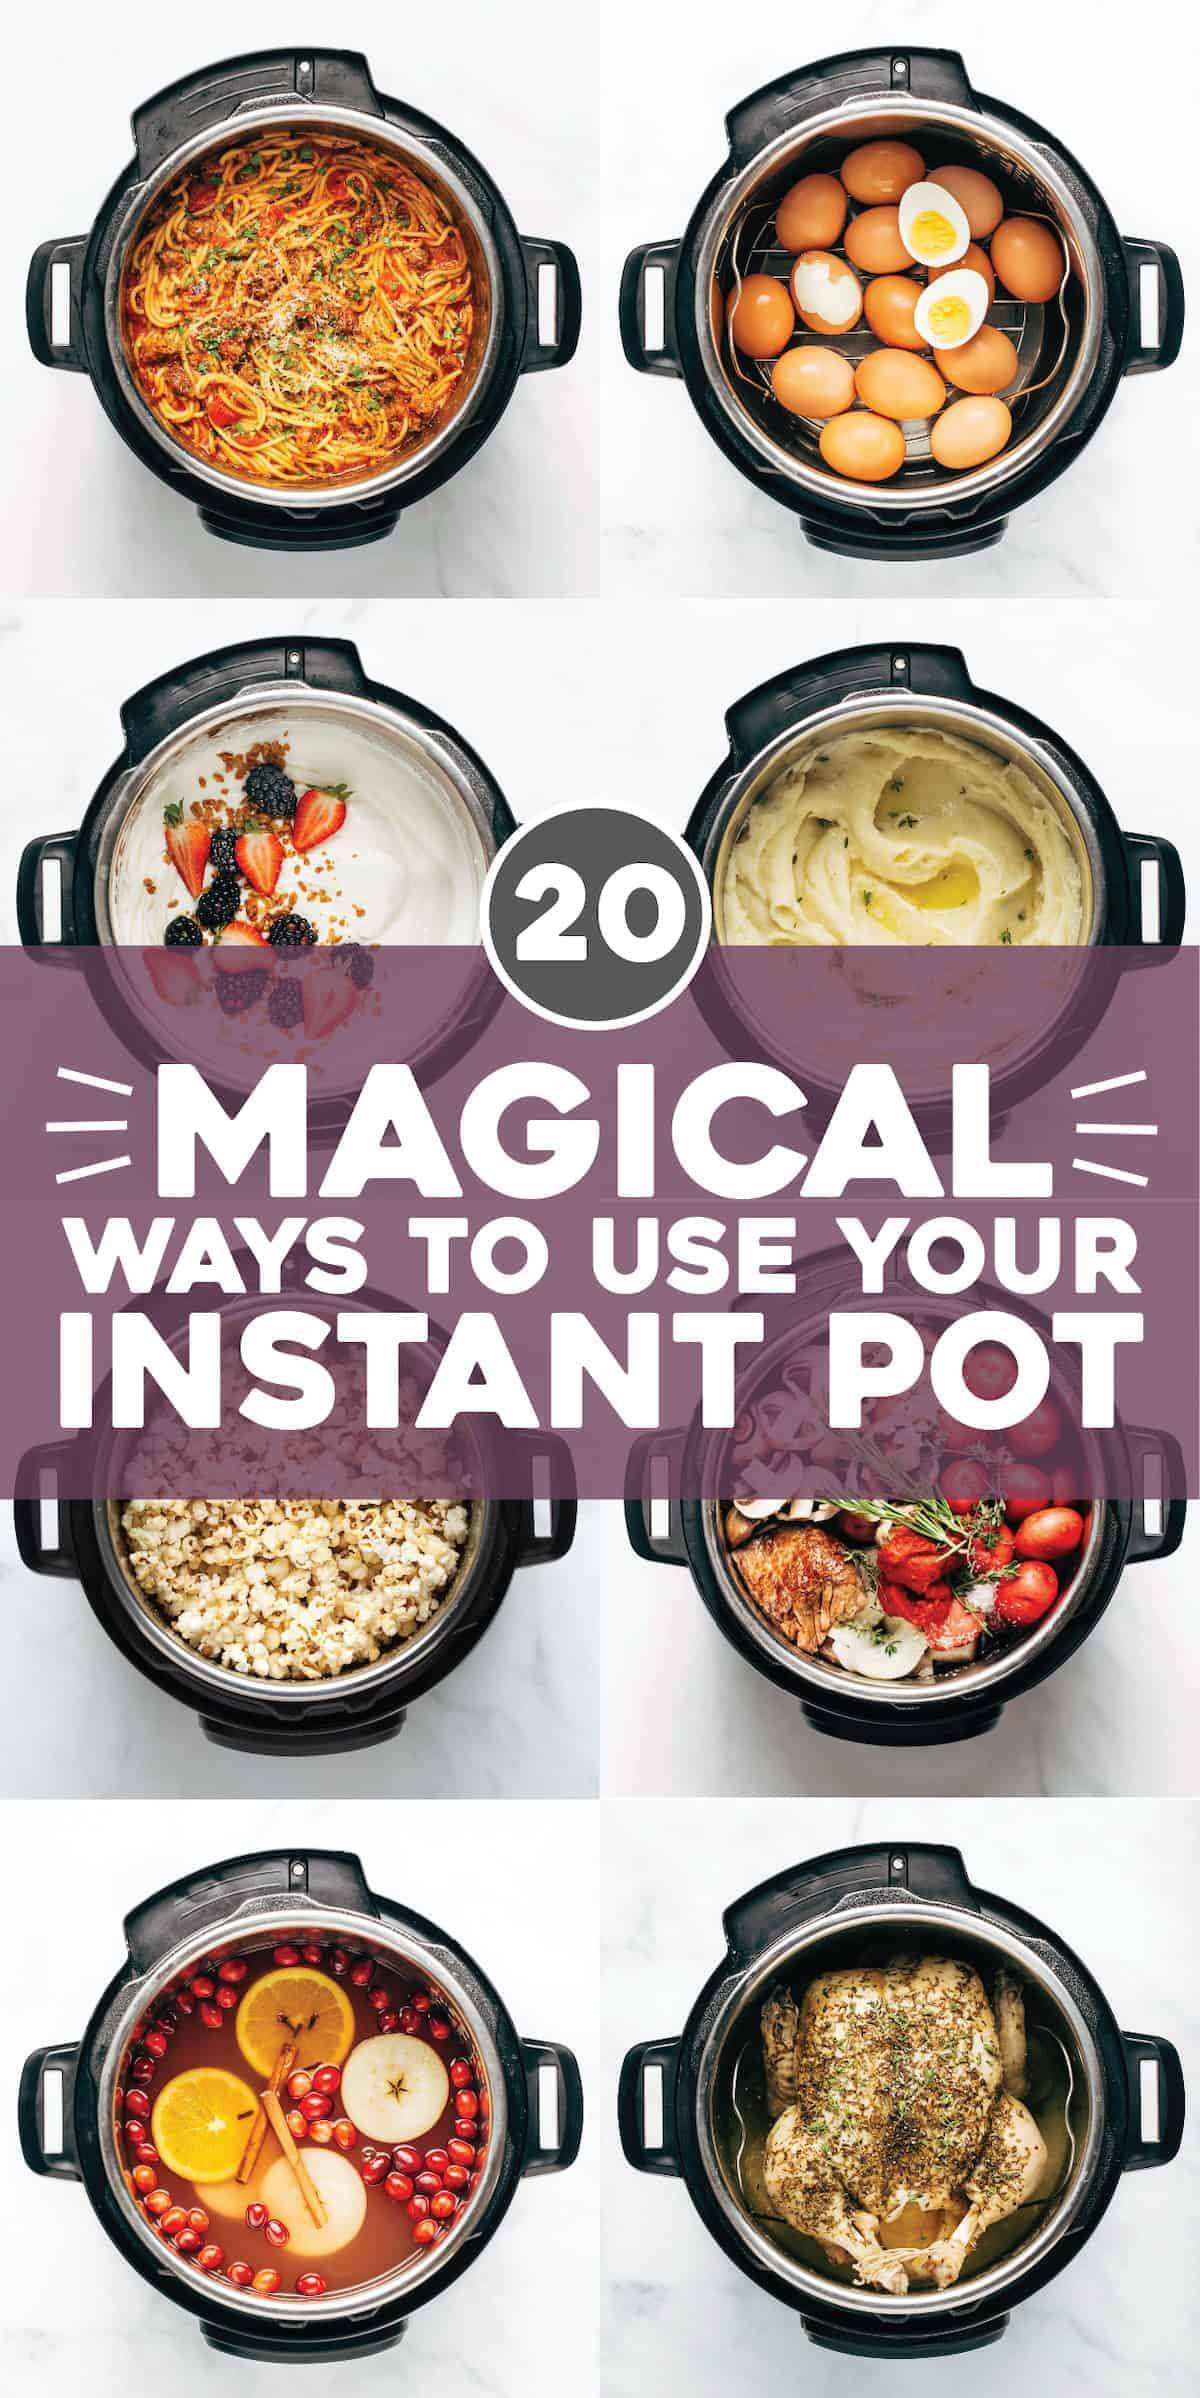 20 Magical Ways to Use Your Instant Pot